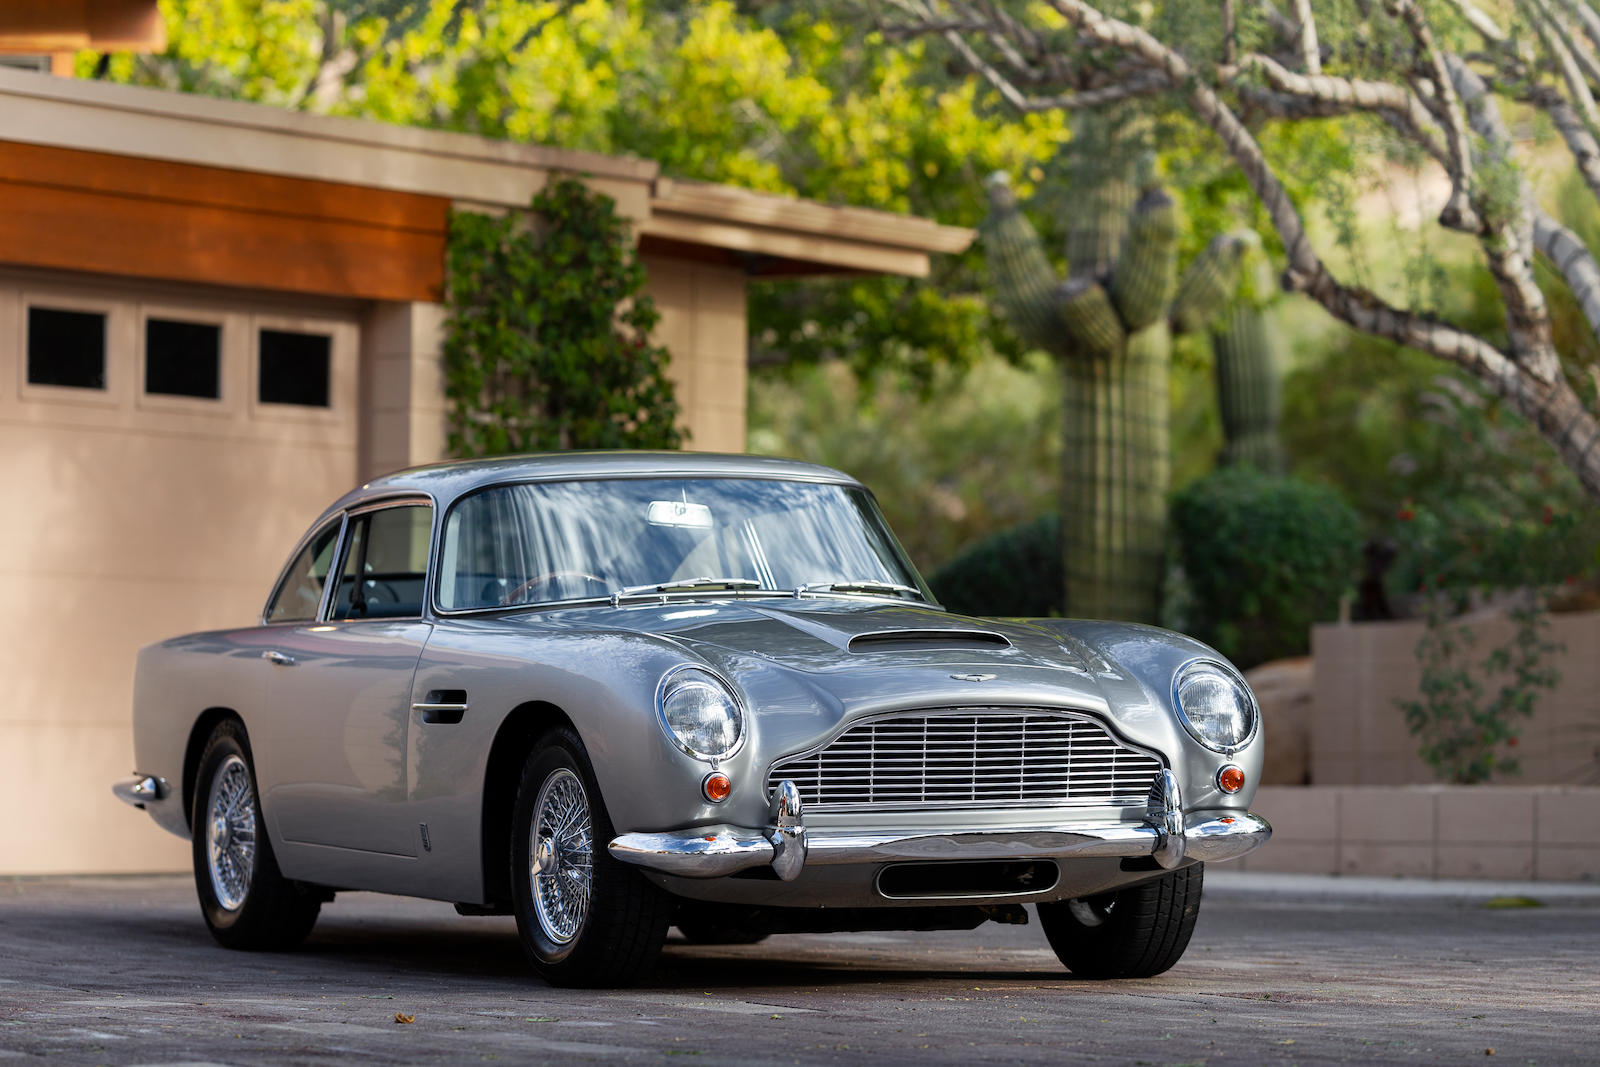 British_1965-Aston-DB5.jpg